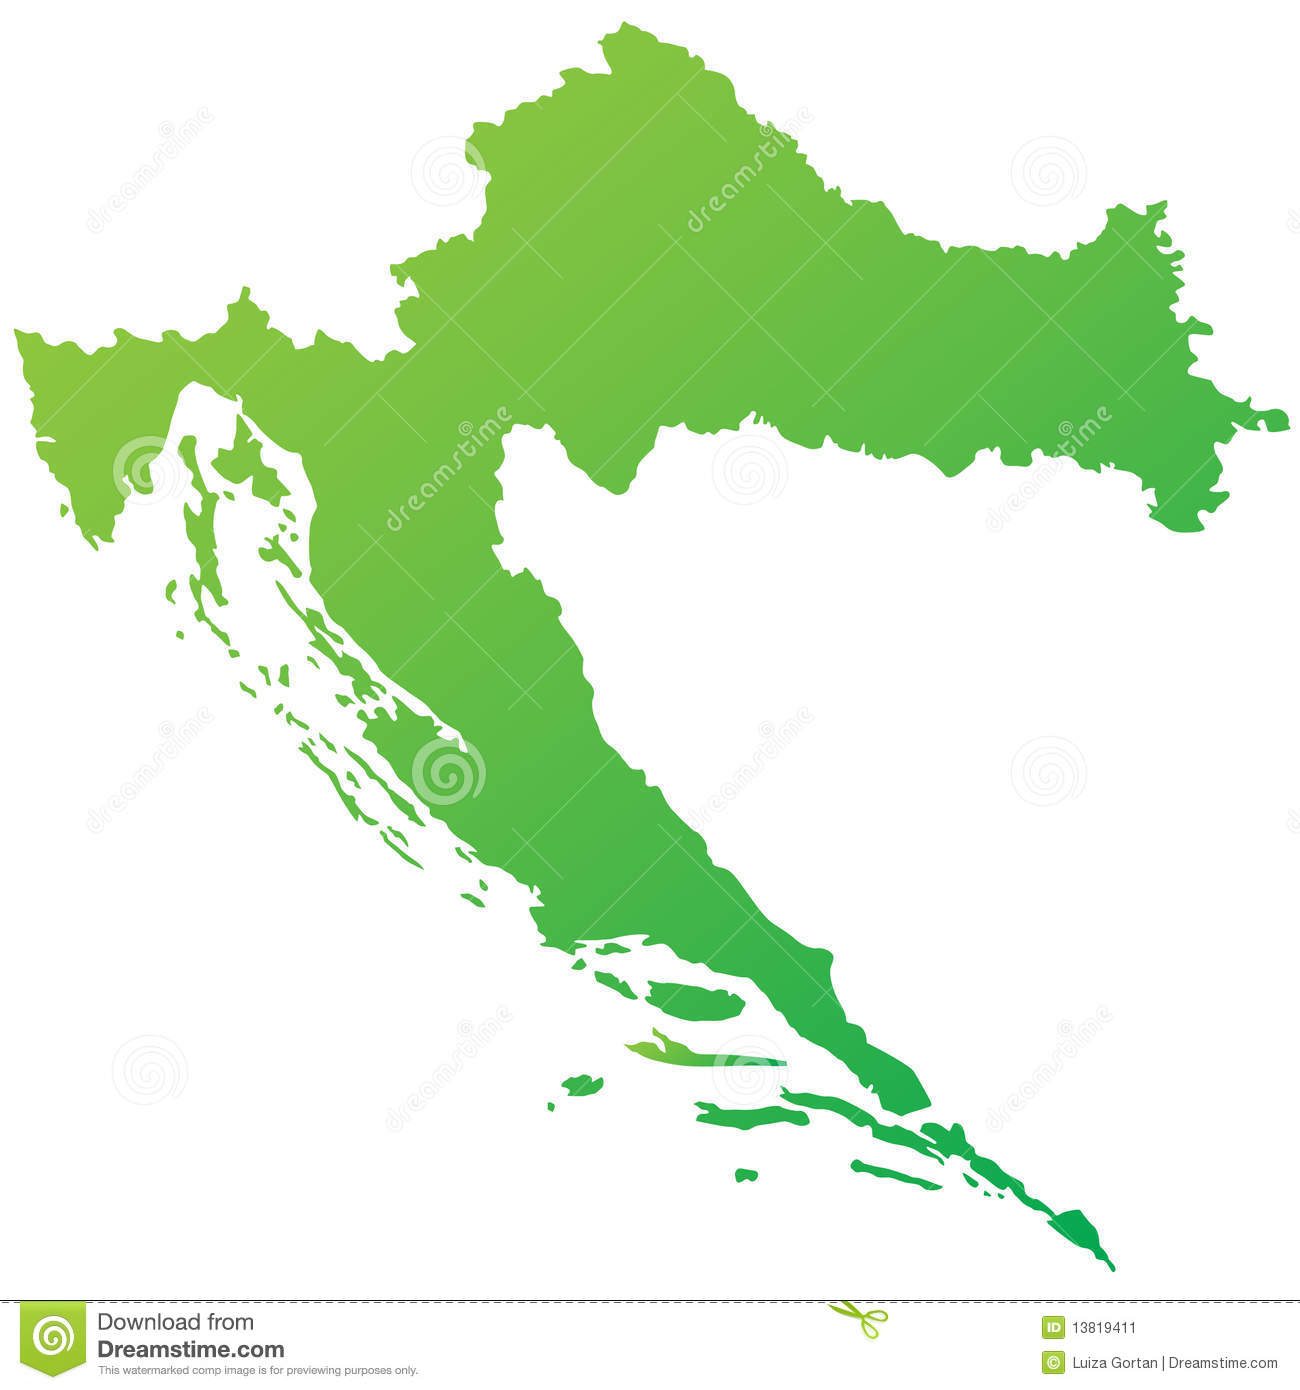 Croatia Map Highly Detailed Green Vector Stock Vector - Illustration ...